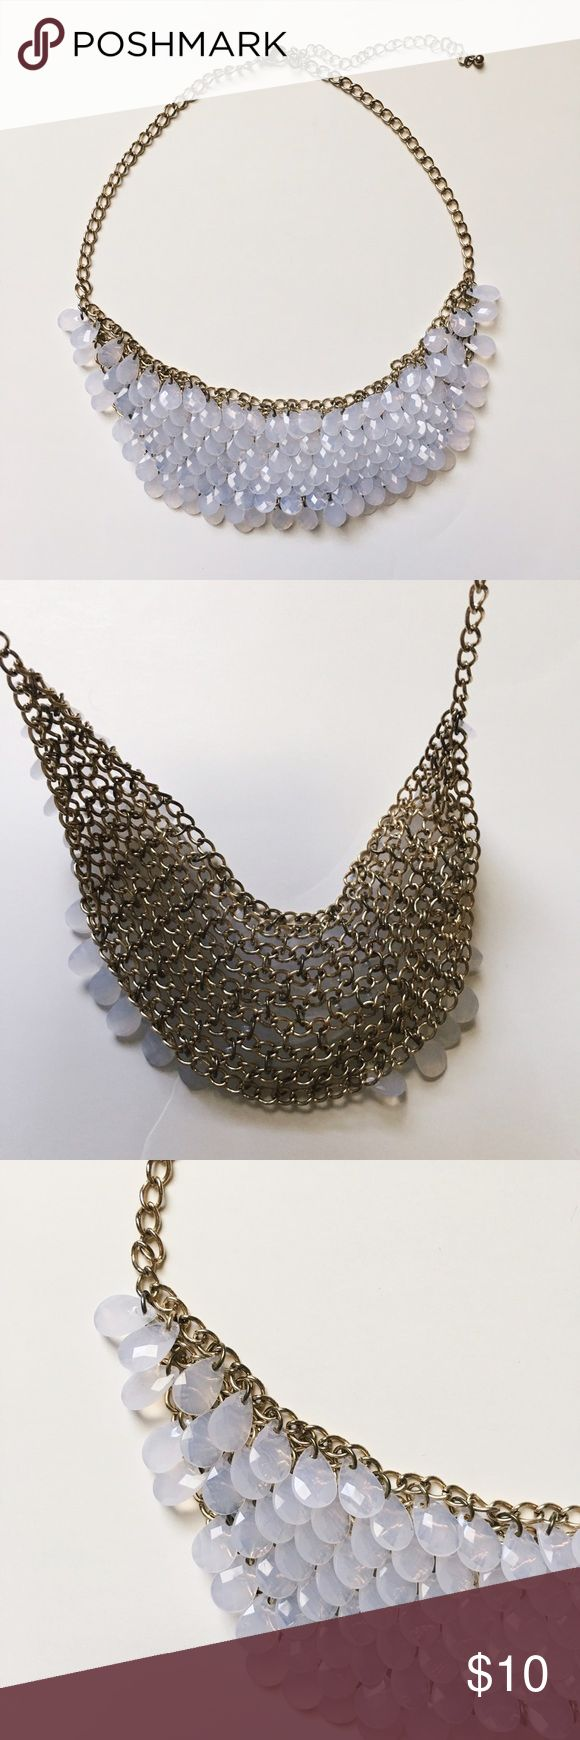 Clear Teardrop Bib Necklace Excellent condition! Gold tone chain with plastic teardrops. All intact. I bought this secondhand and it had no tags so I have no idea what the brand is!! 😓 Listed as jcrew for exposure only. Works with a variety of necklines, from crew to v-neck. Listing price is my lowest, please bundle for a discount, thanks! 😘 J. Crew Jewelry Necklaces